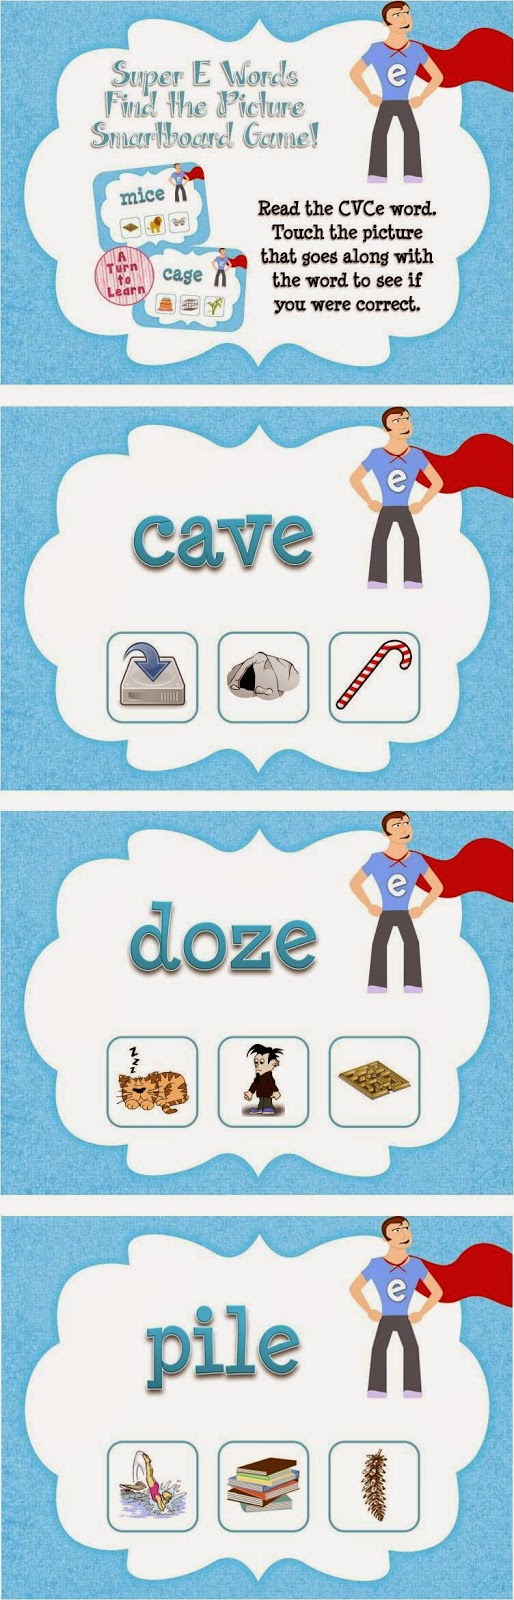 Super E / CVCe Find the Picture Game for Smartboard or Promethean Board!